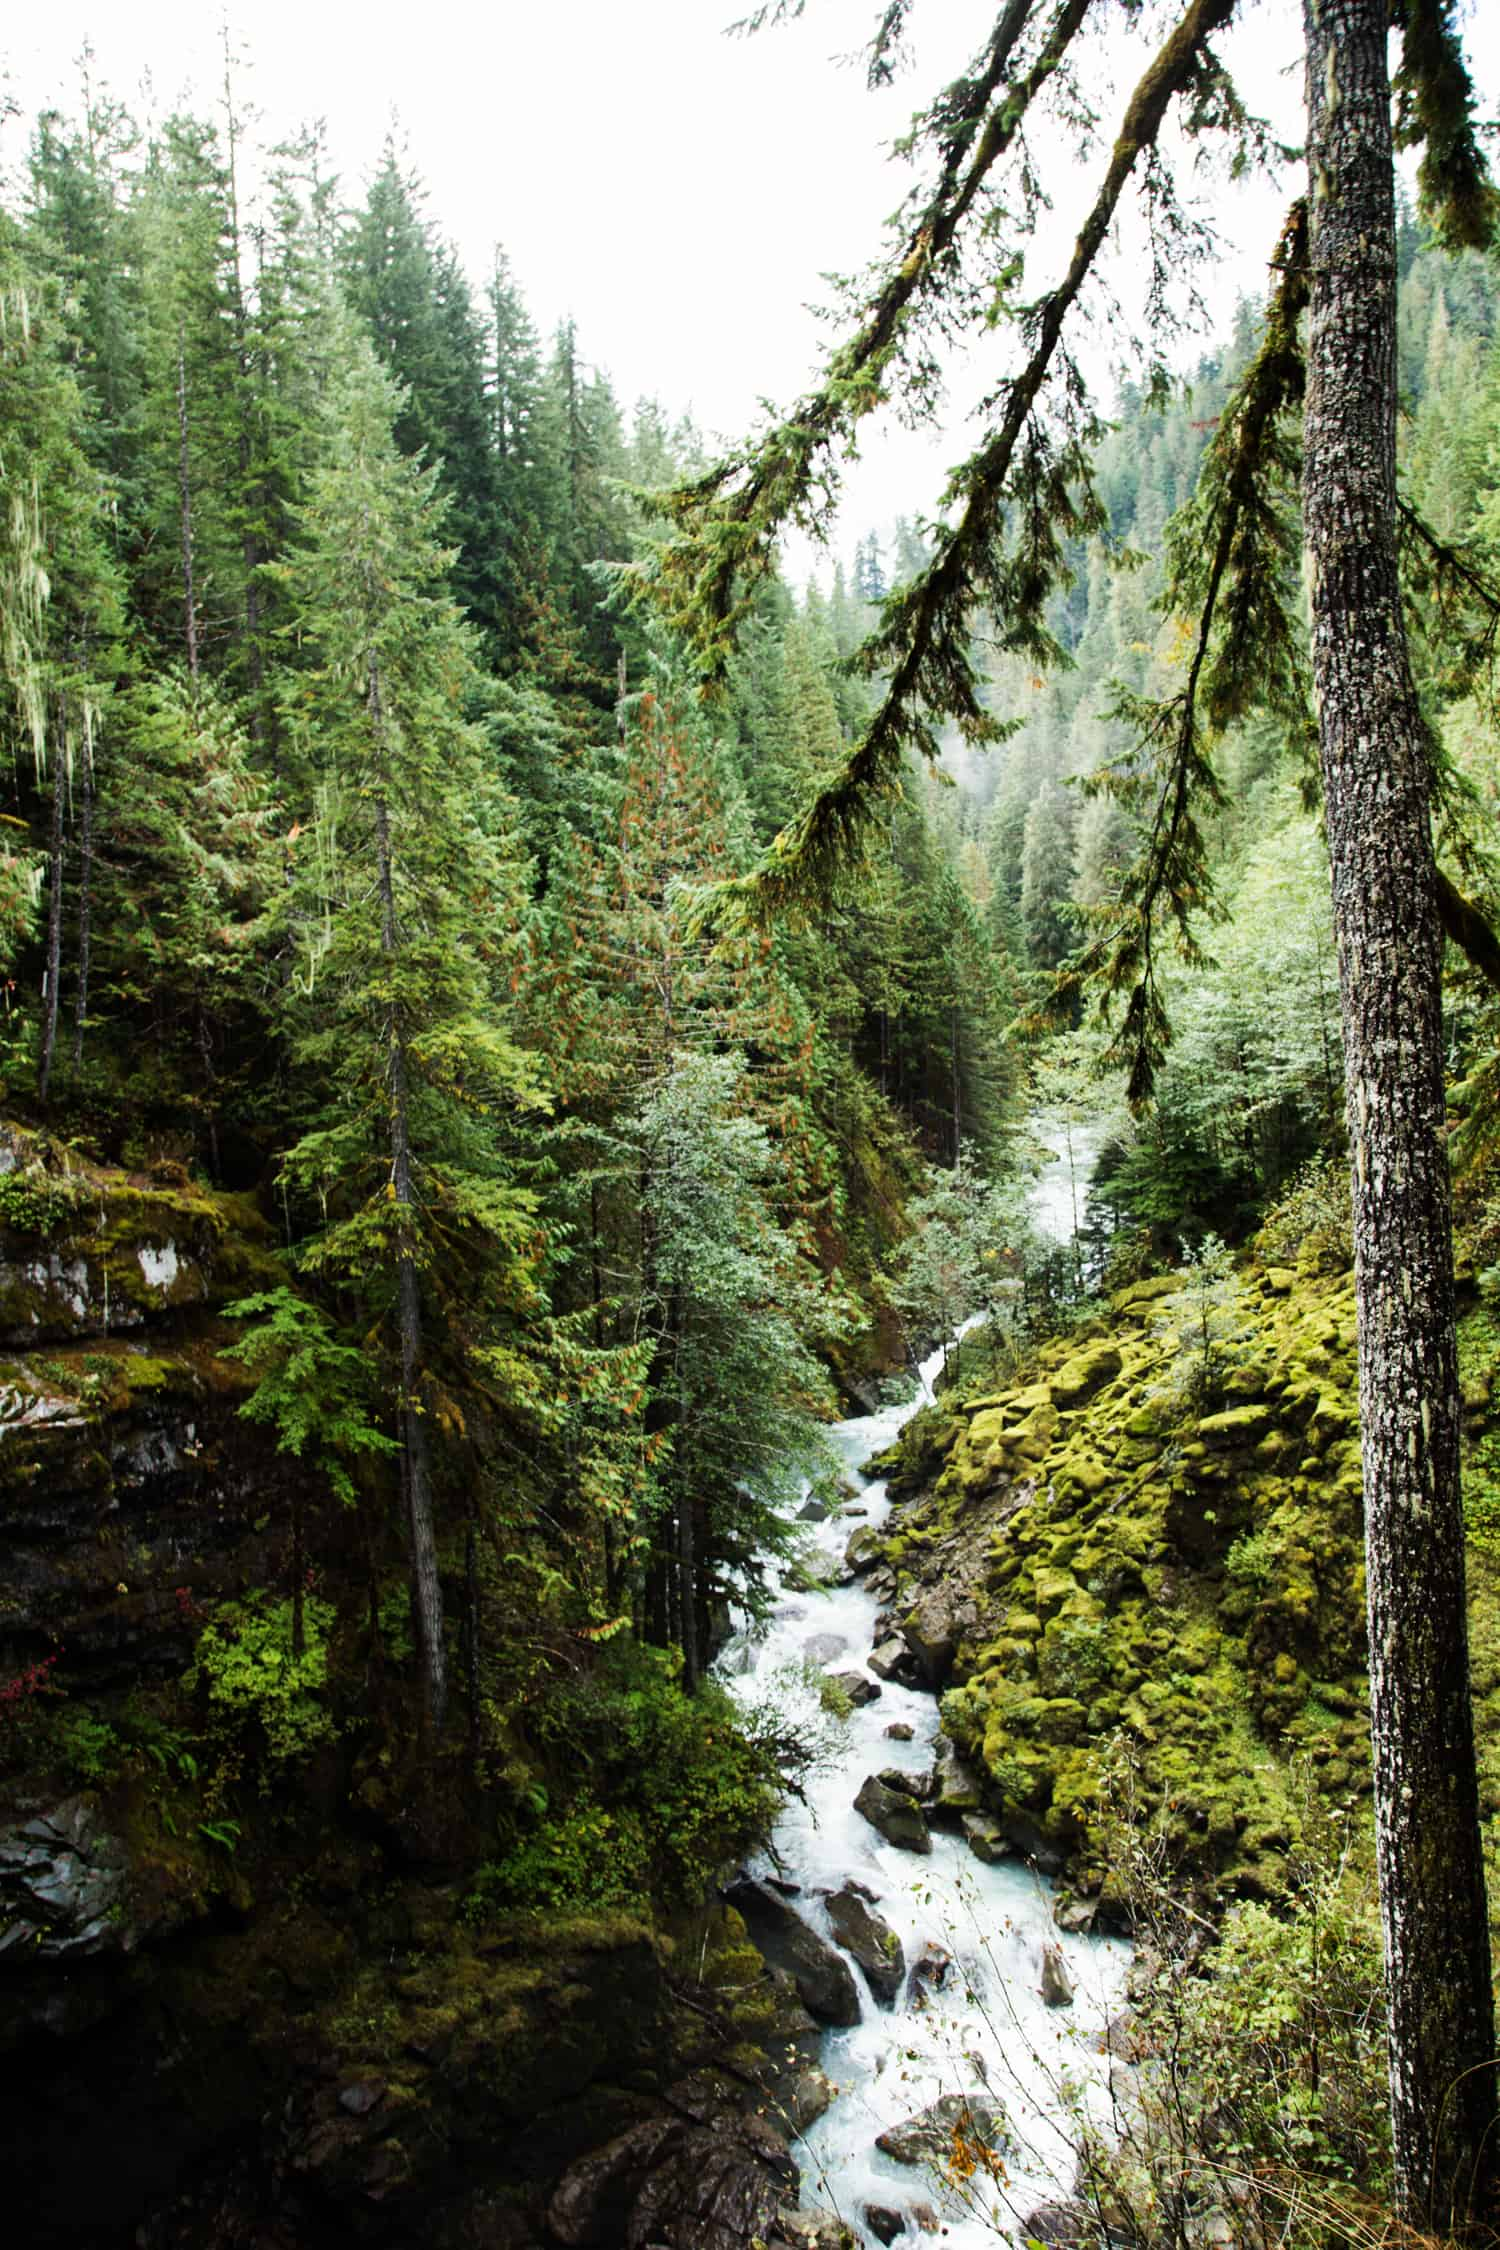 Nooksack Falls meets Wells Creek on it's way down the Nooksack River Valley #BorntoShred #ShredtheDay #collectivebias #ad